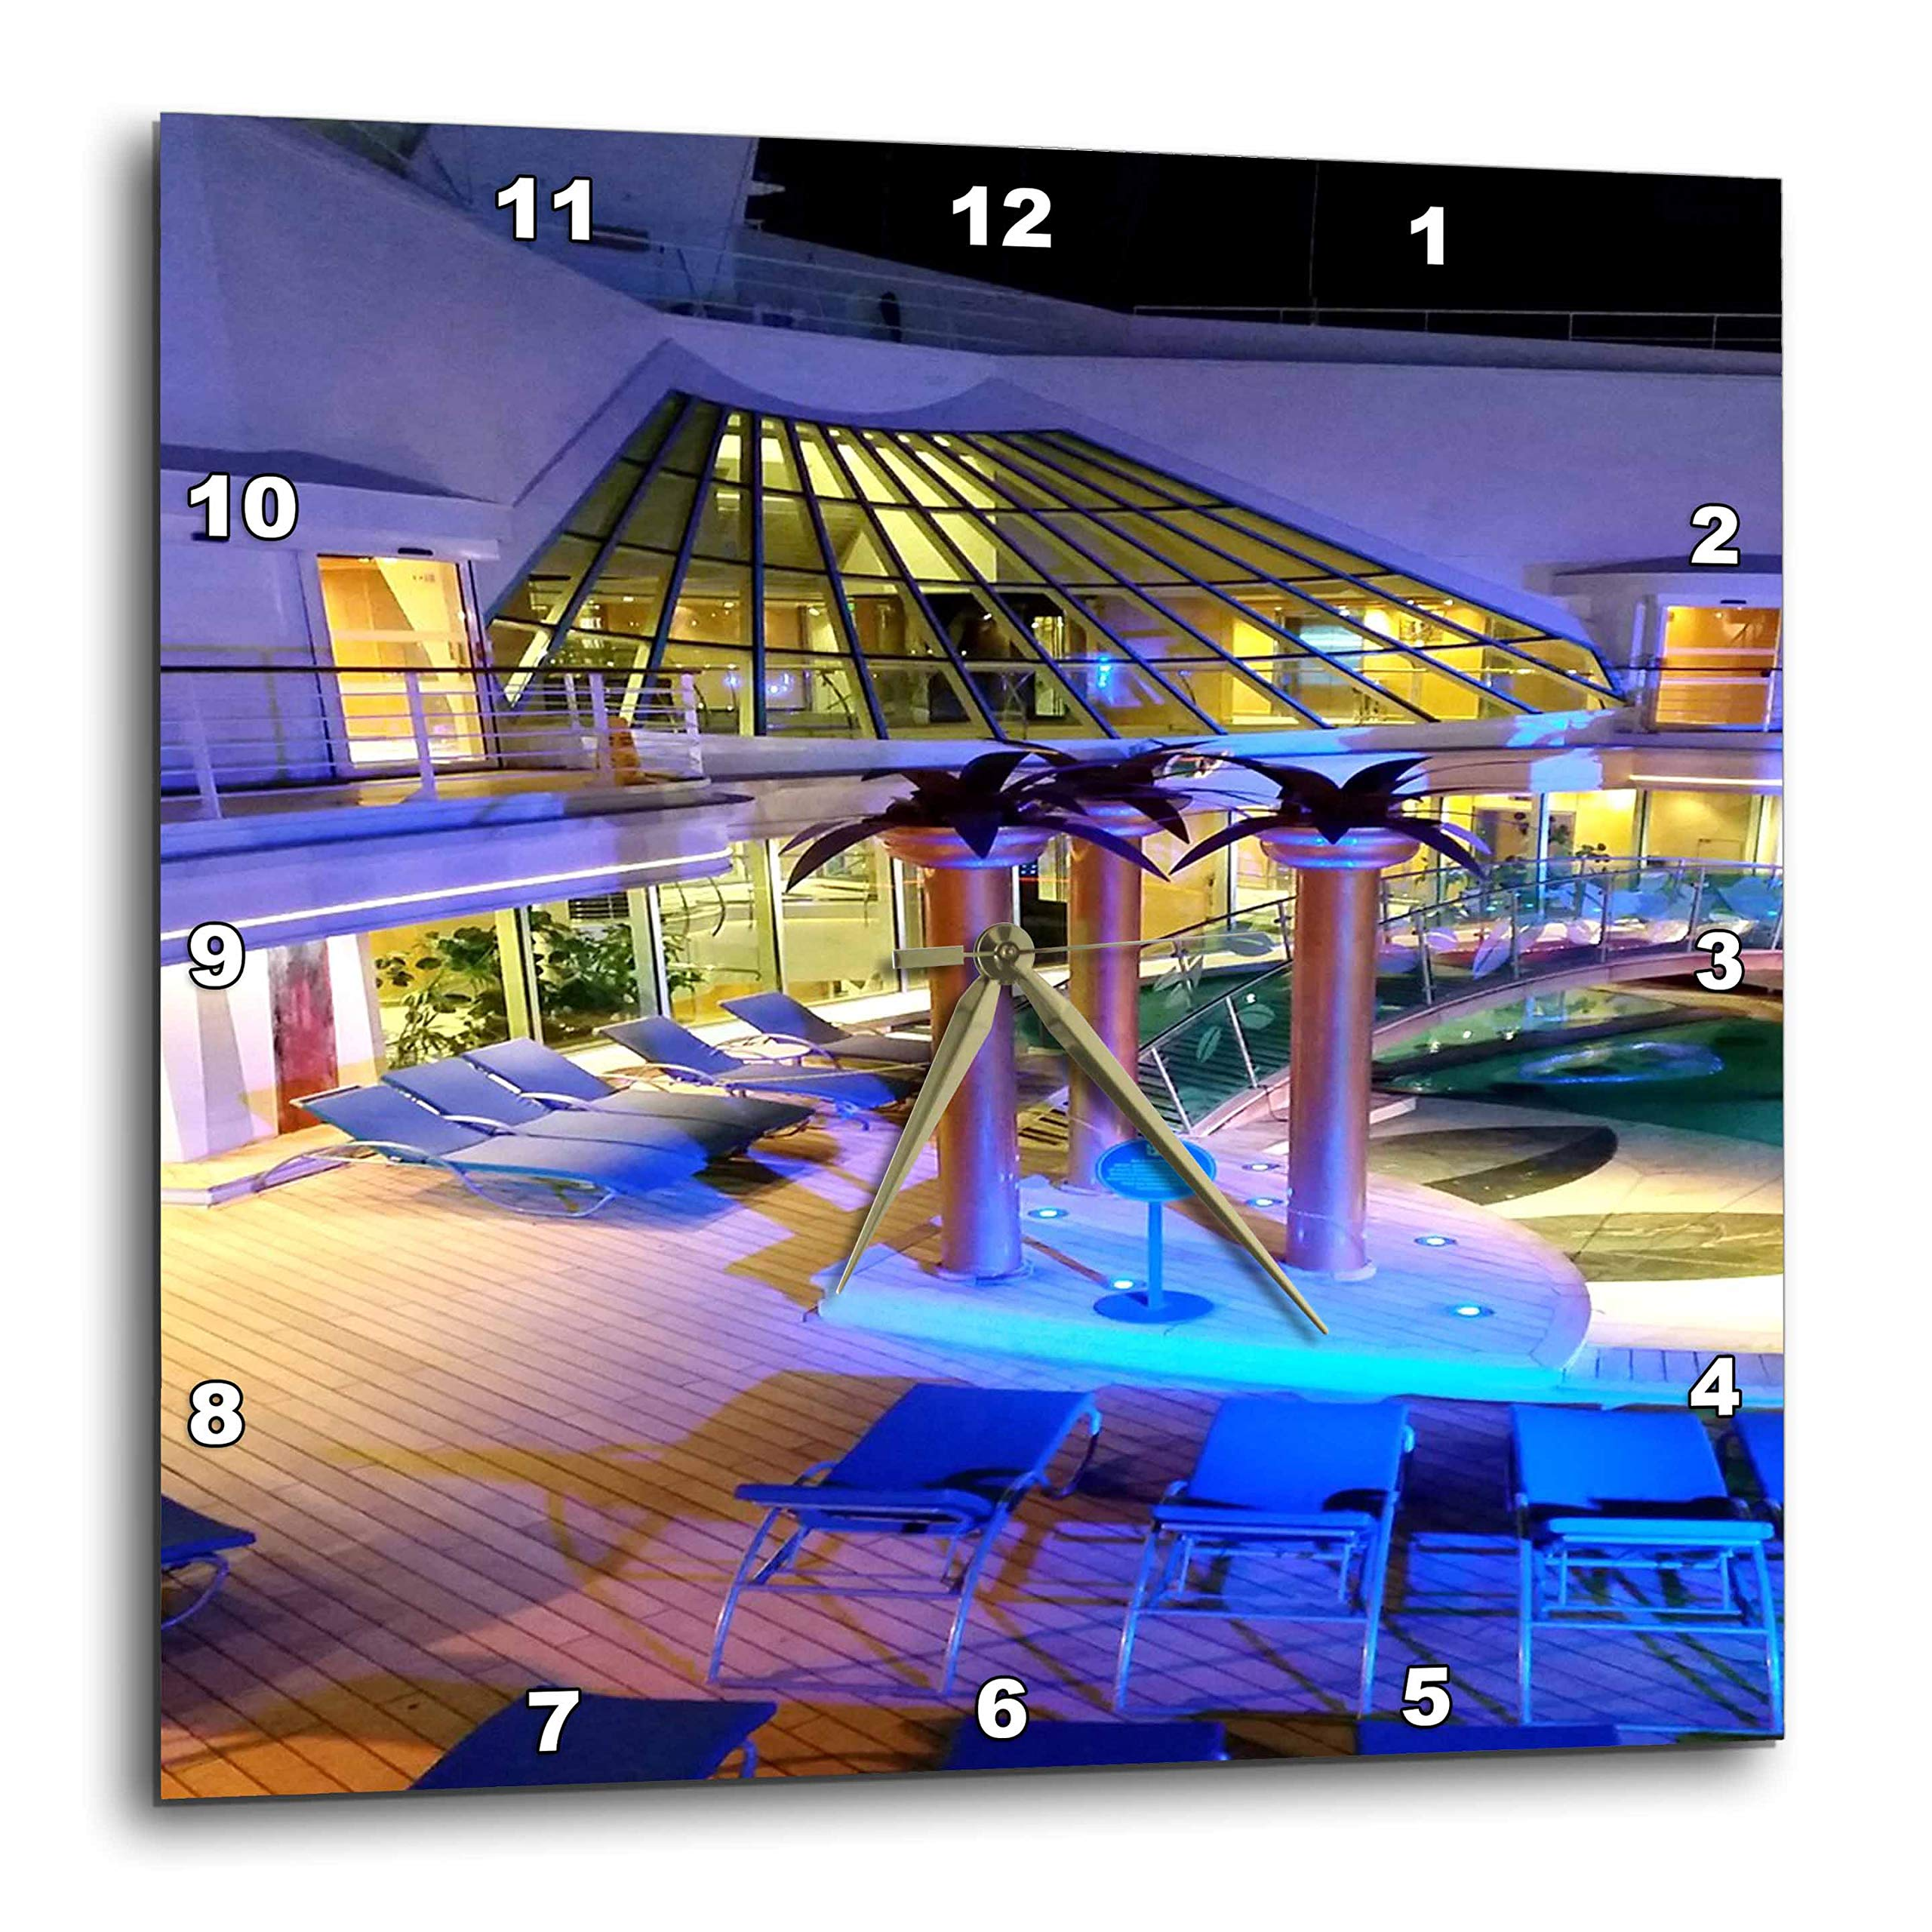 3dRose Lens Art by Florene - Cruise Ship Sites - Image of Adult Pool Area with Spa - 10x10 Wall Clock (DPP_291436_1)